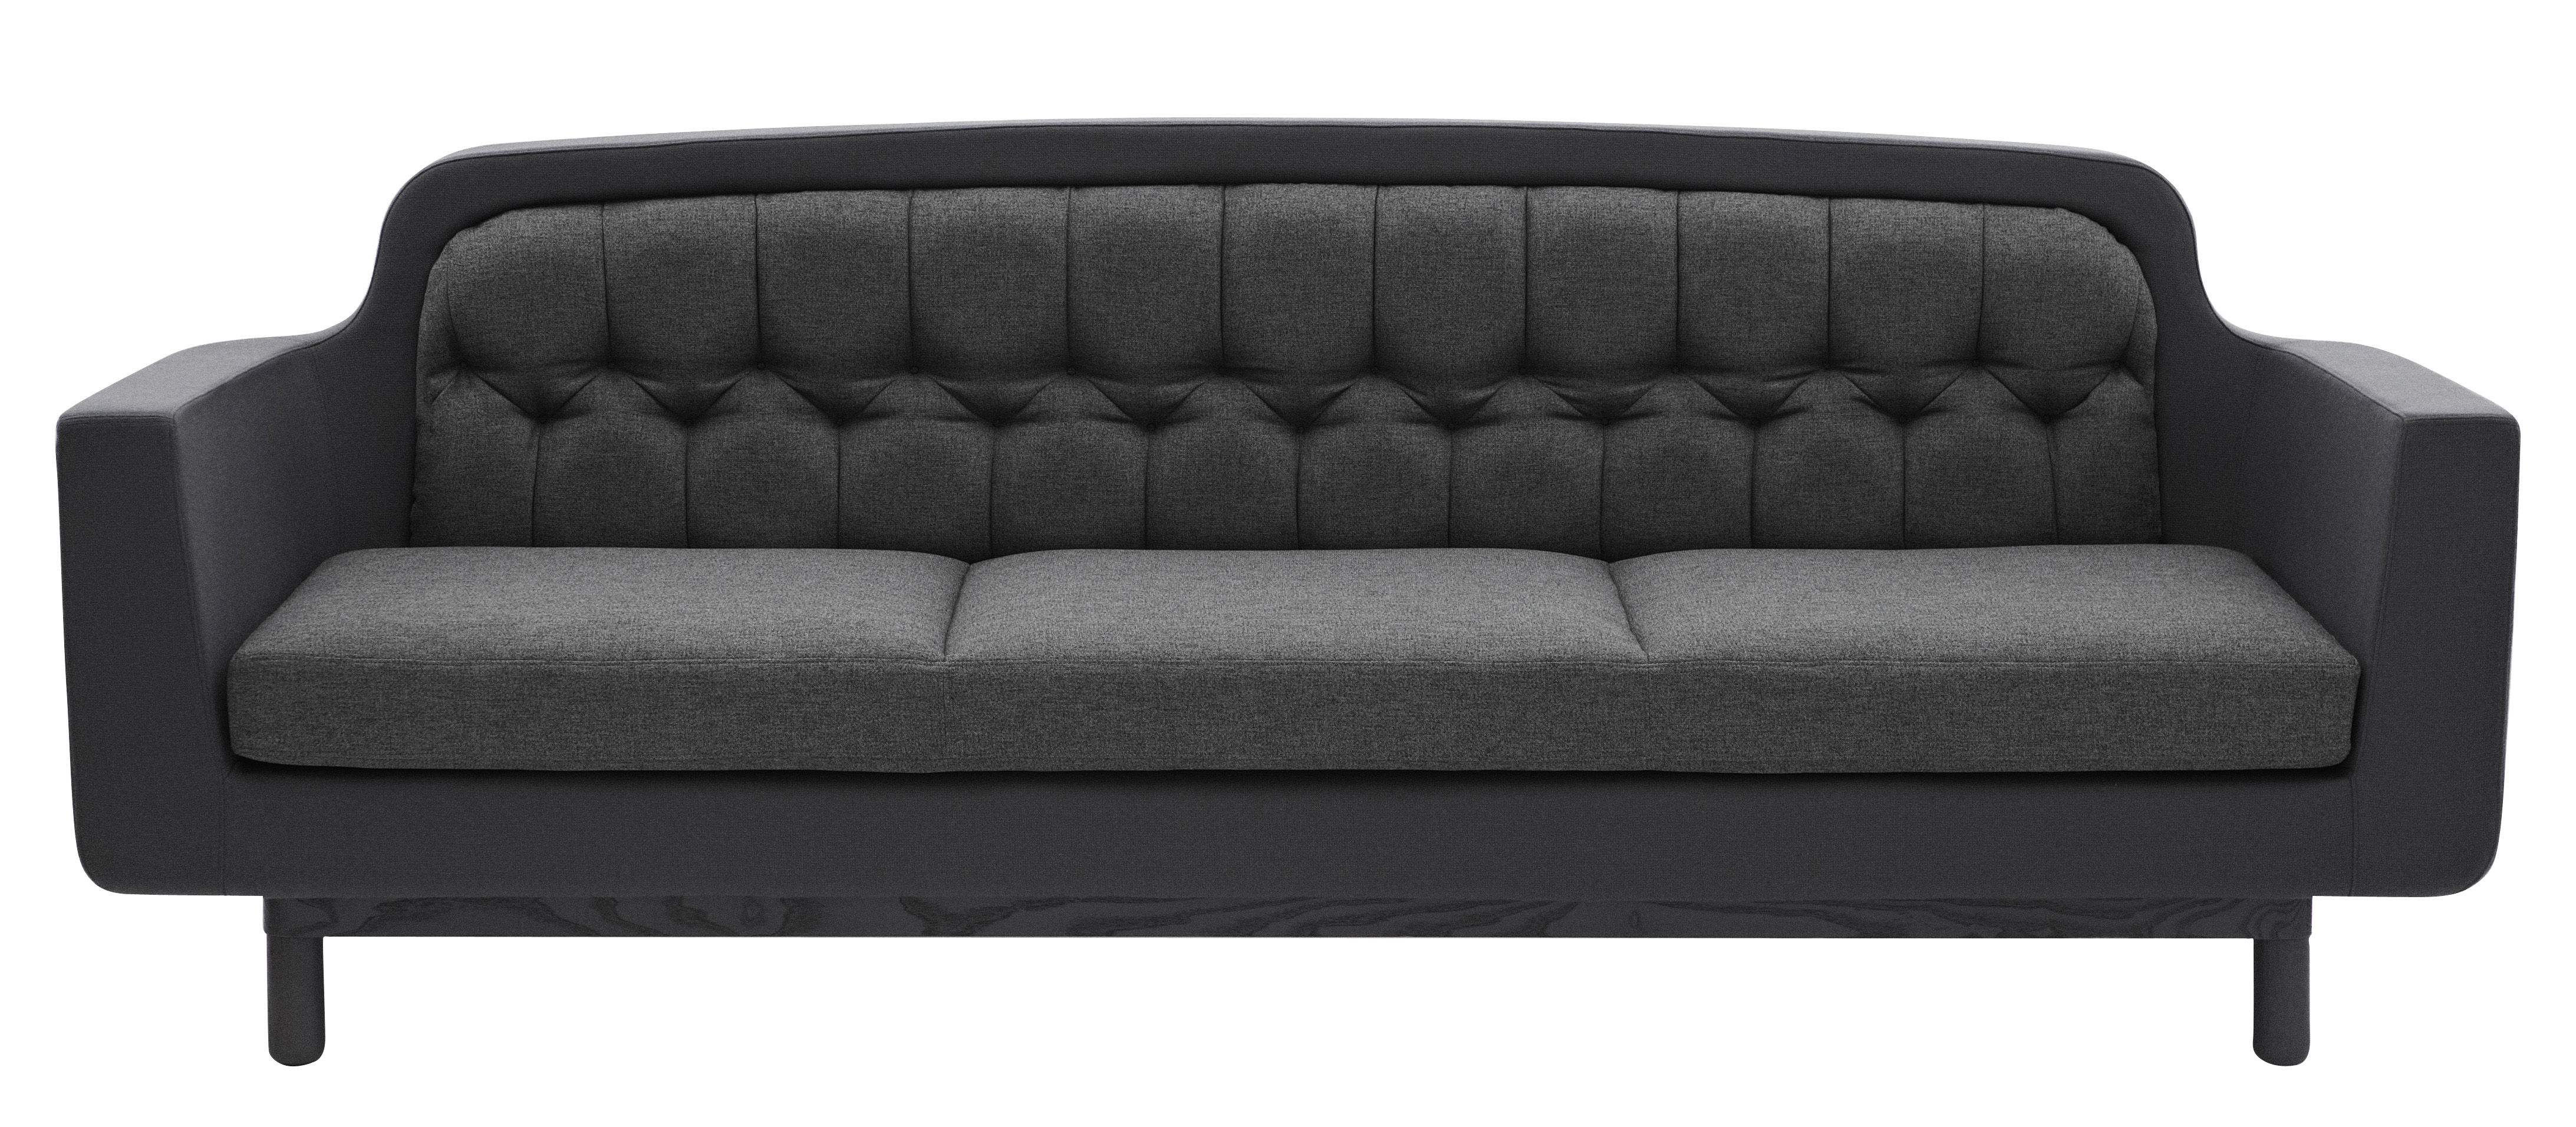 Furniture - Sofas - Onkel Straight sofa - W 235 cm - 3 seats by Normann Copenhagen - Dark Grey - Wood